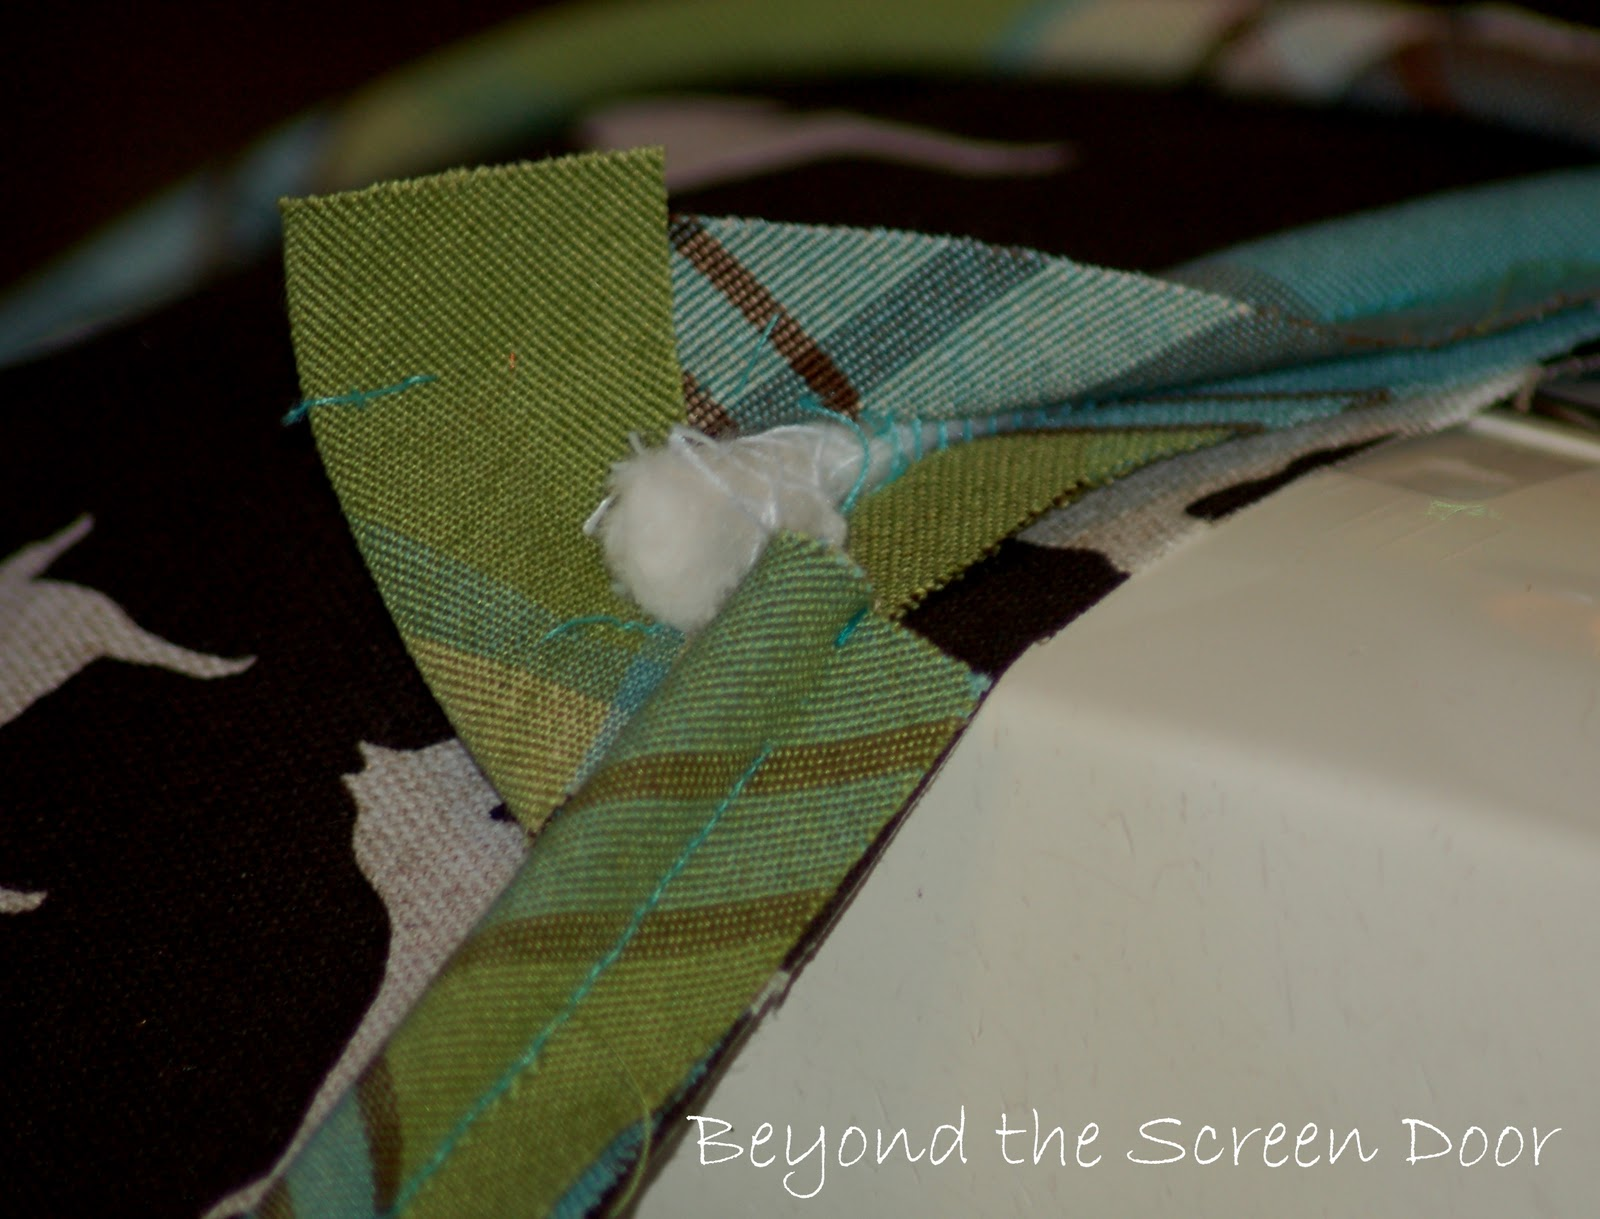 How To Make Self Piping Self Cording For Your Projects